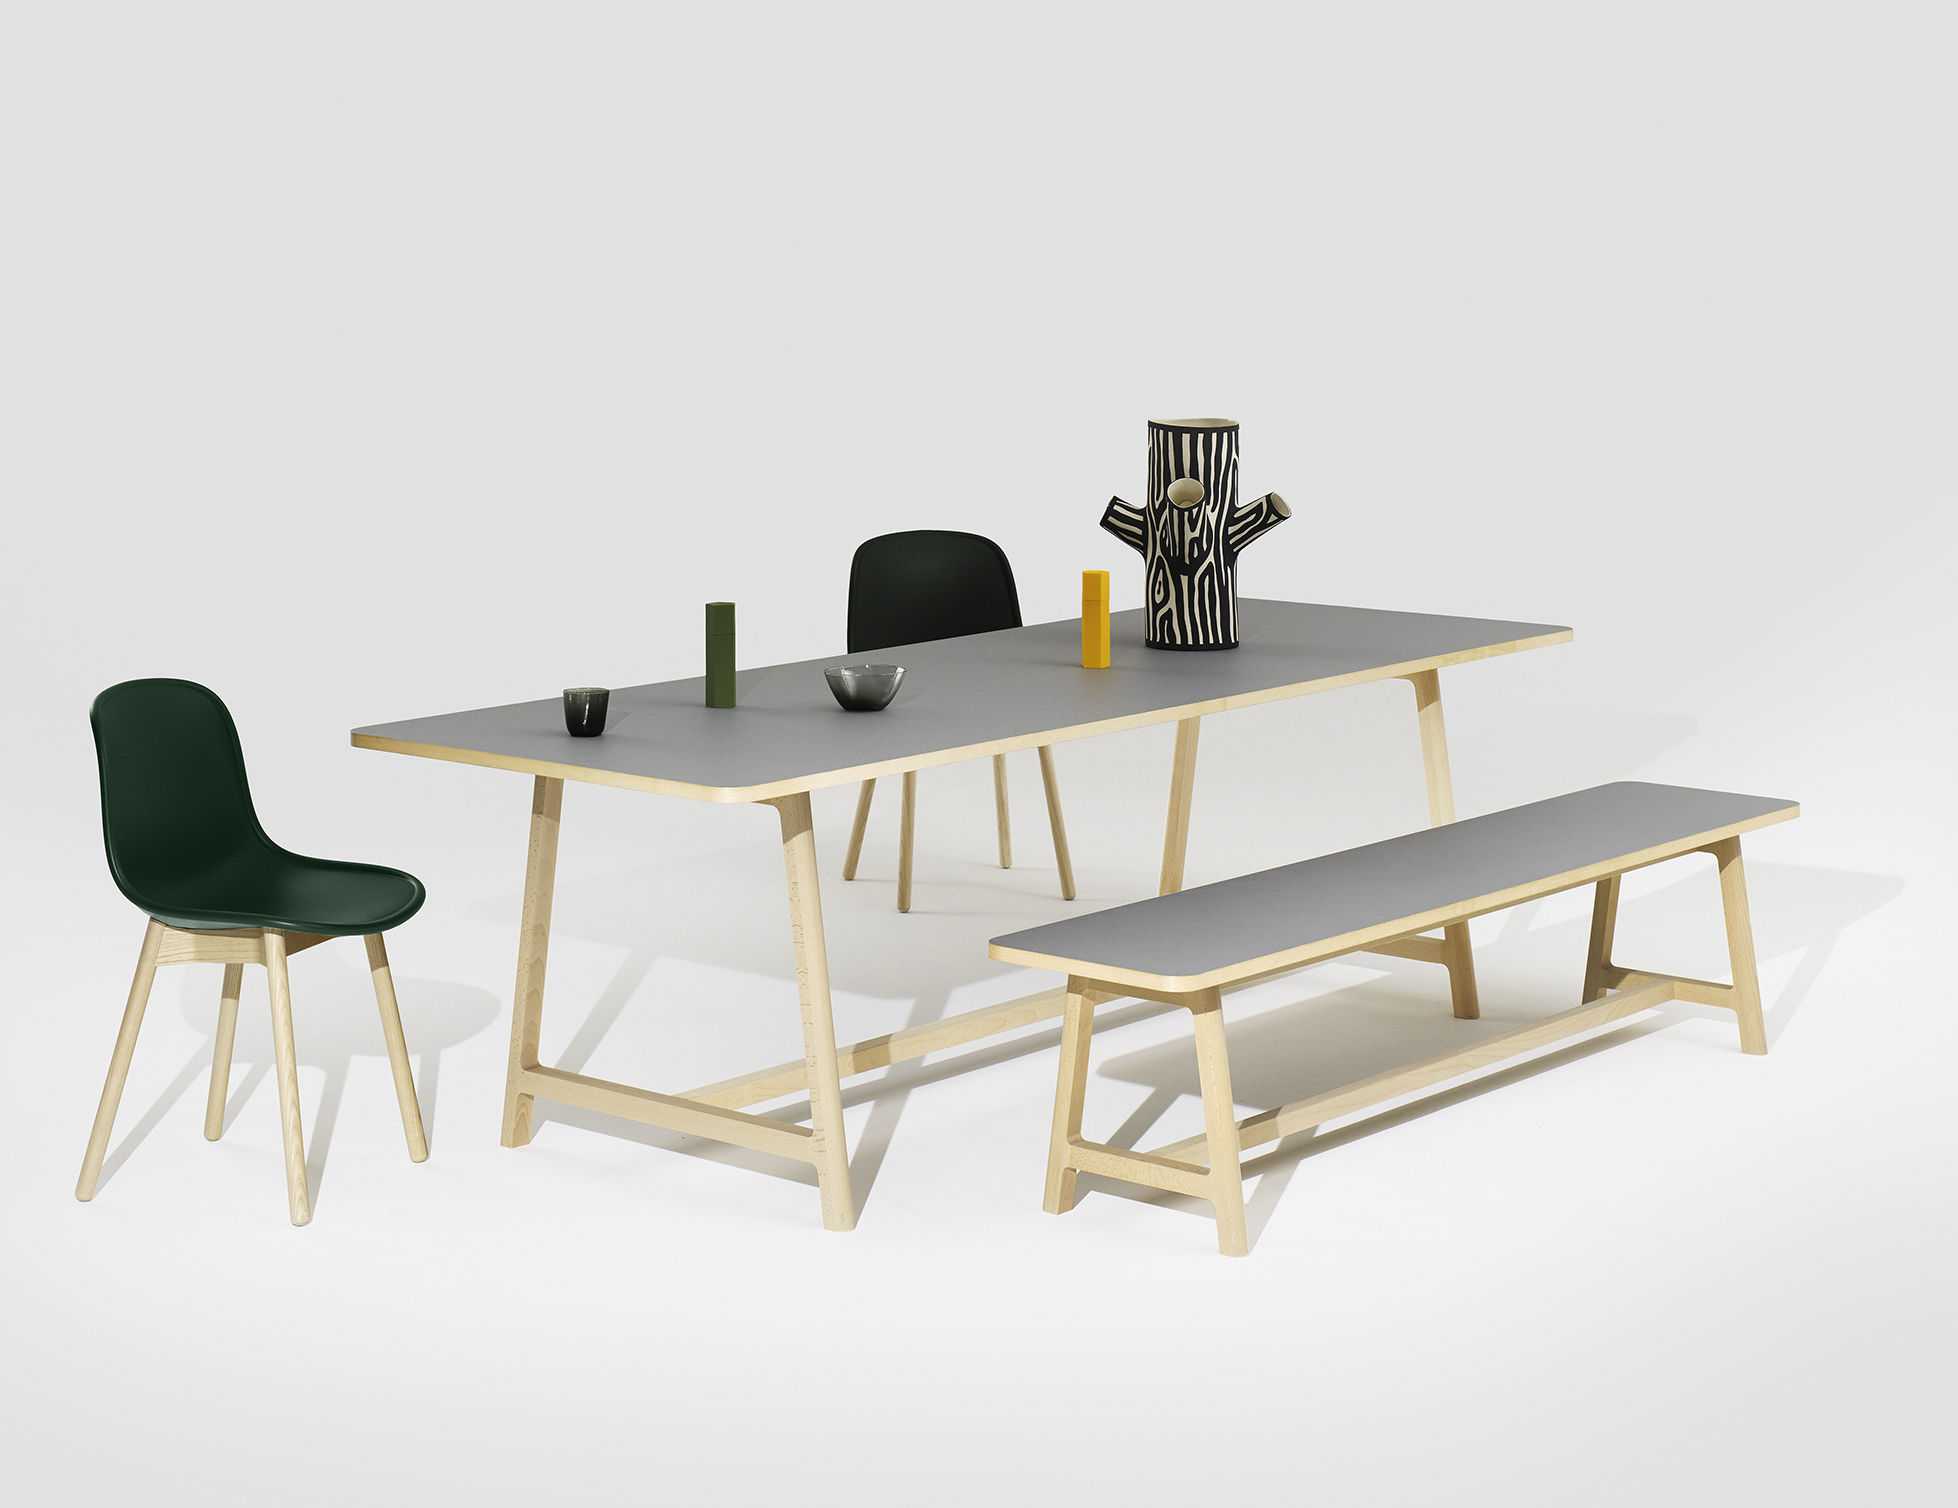 Frame extending table l 200 to 300 cm grey wood legs by hay made in design uk for Table 300 cm